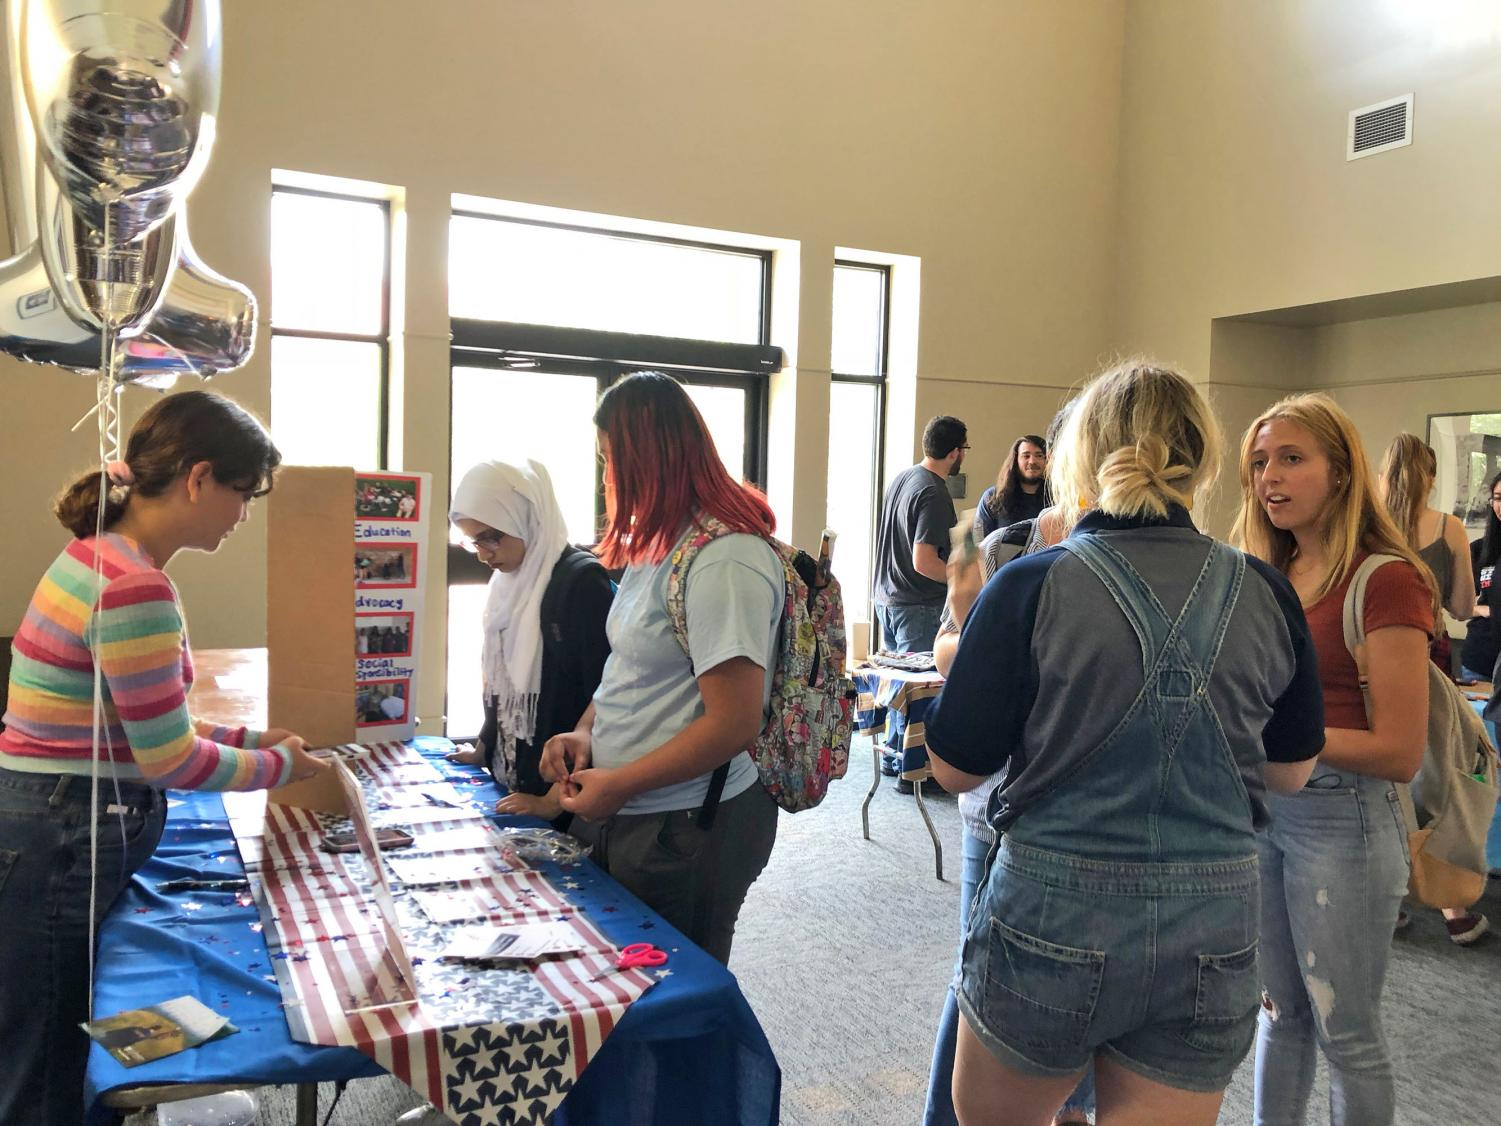 The Involvement Fair occurs twice a year to kick off a new semester.